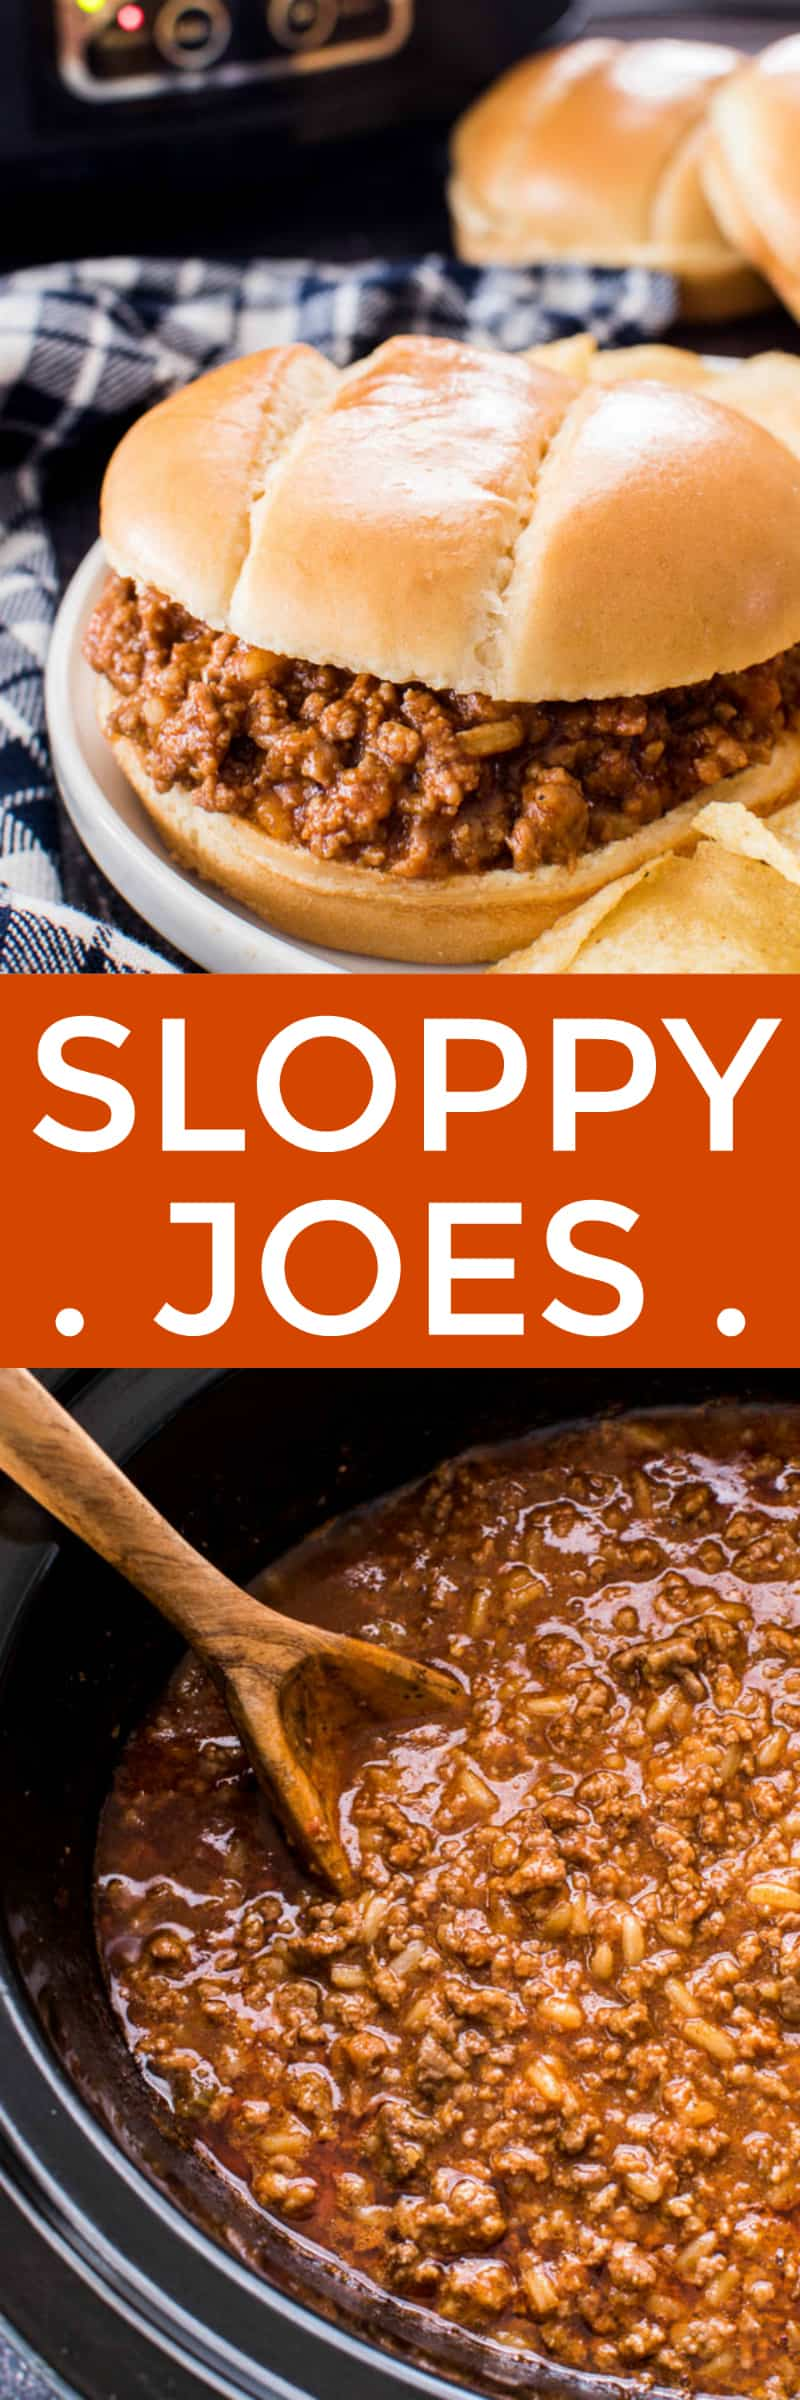 Sloppy Joes in crock pot and in a bun